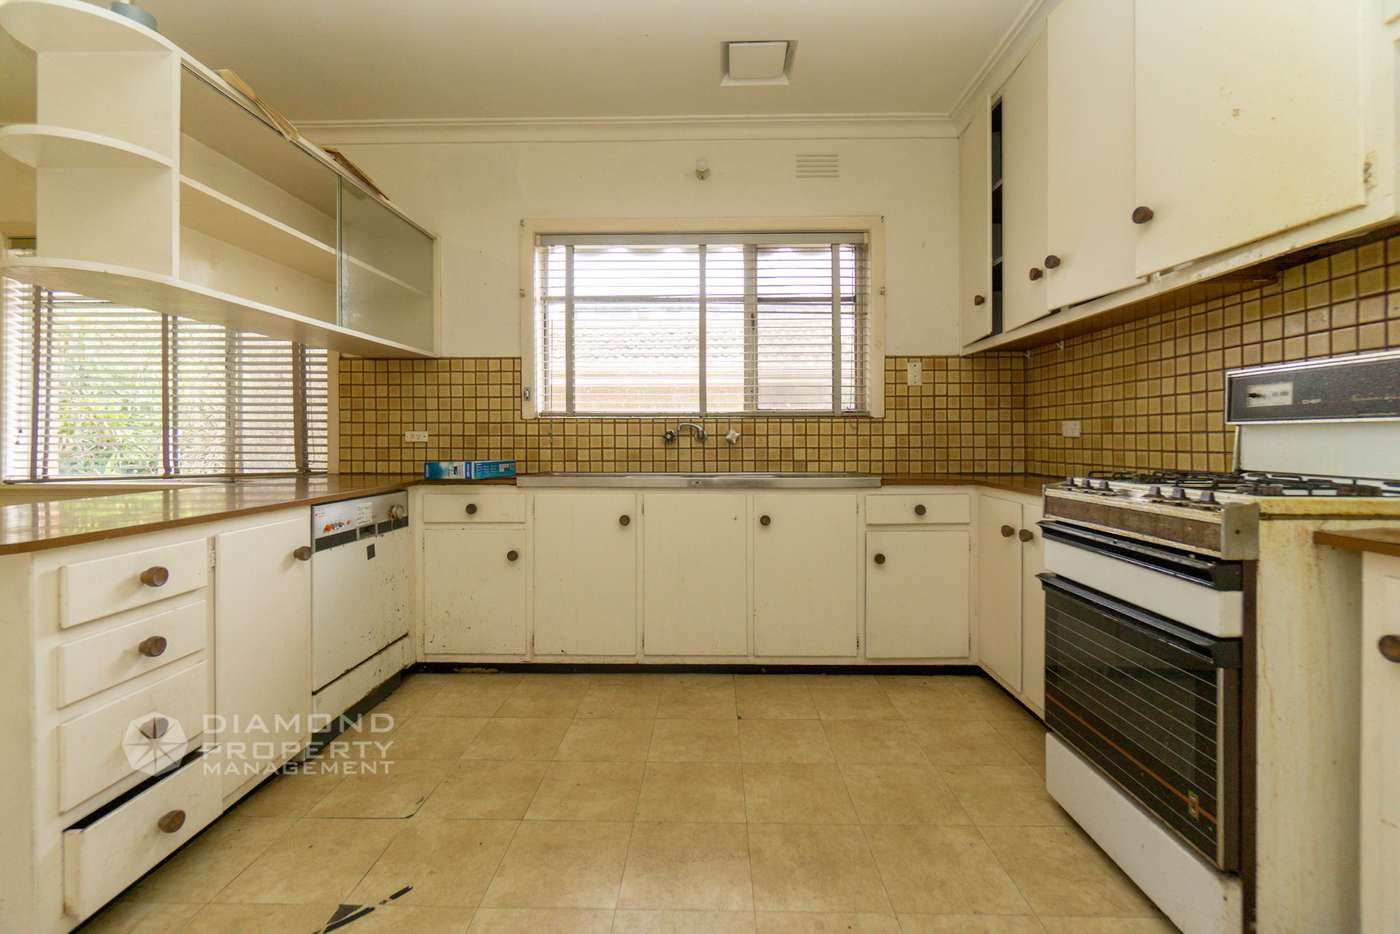 Sixth view of Homely house listing, 2XX Burwood Highway, Burwood VIC 3125